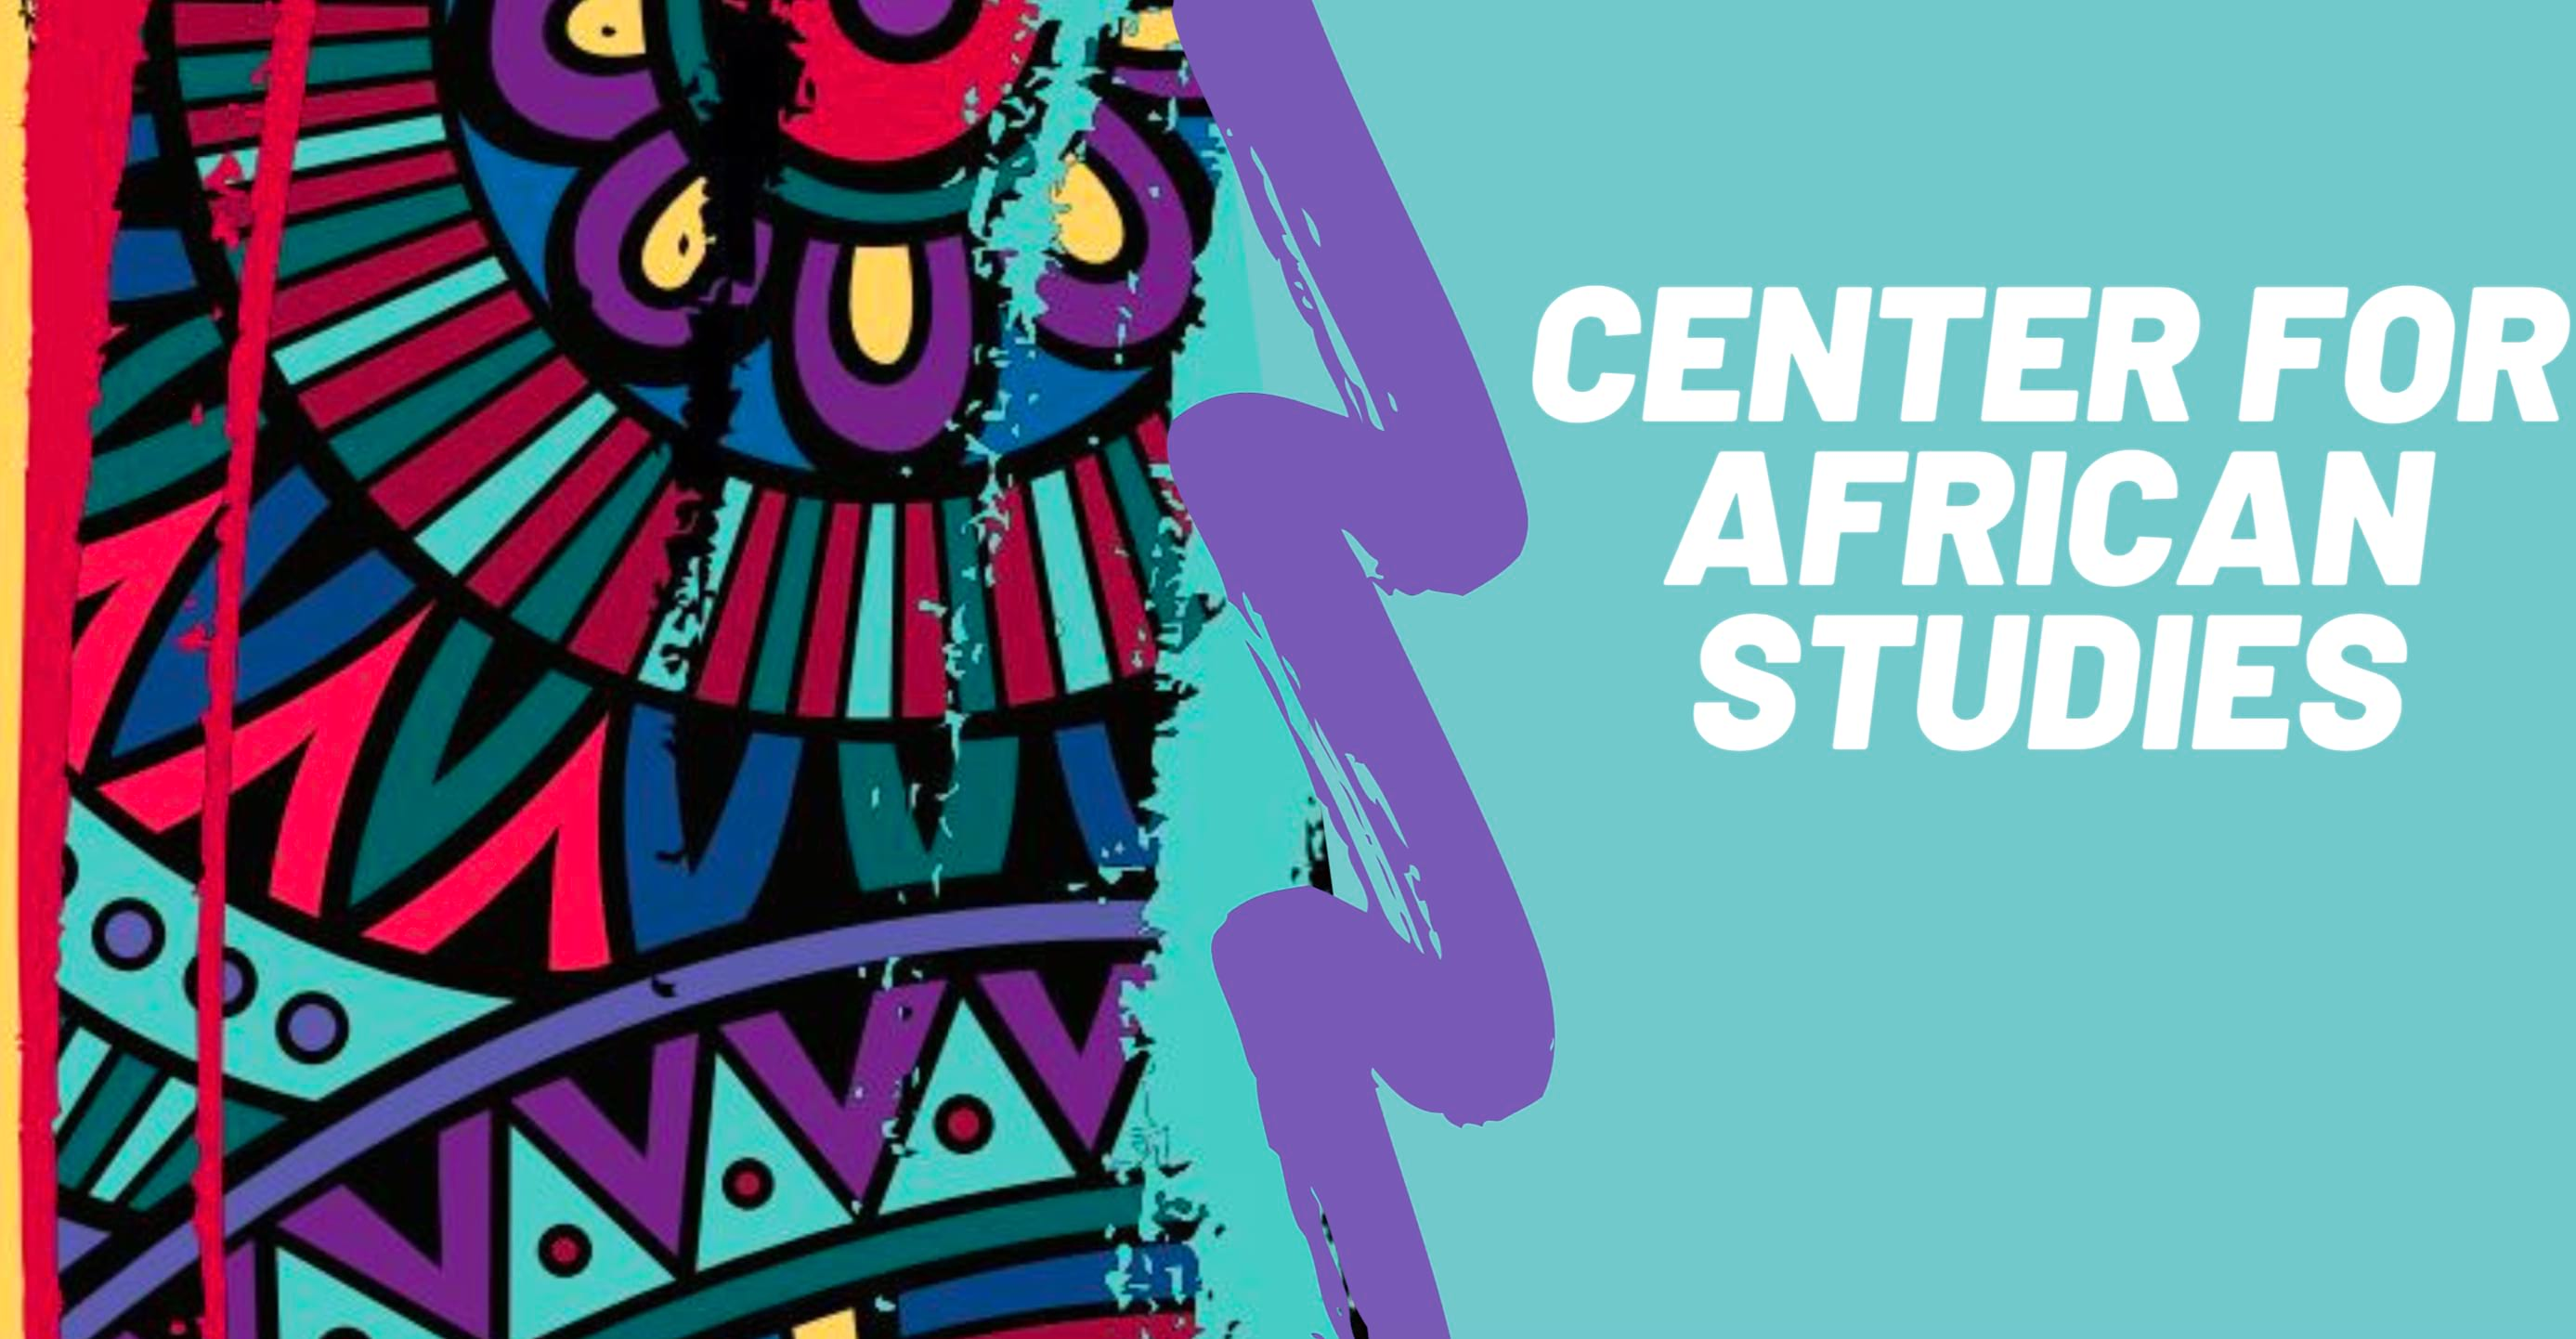 Center for African Studies Graphic